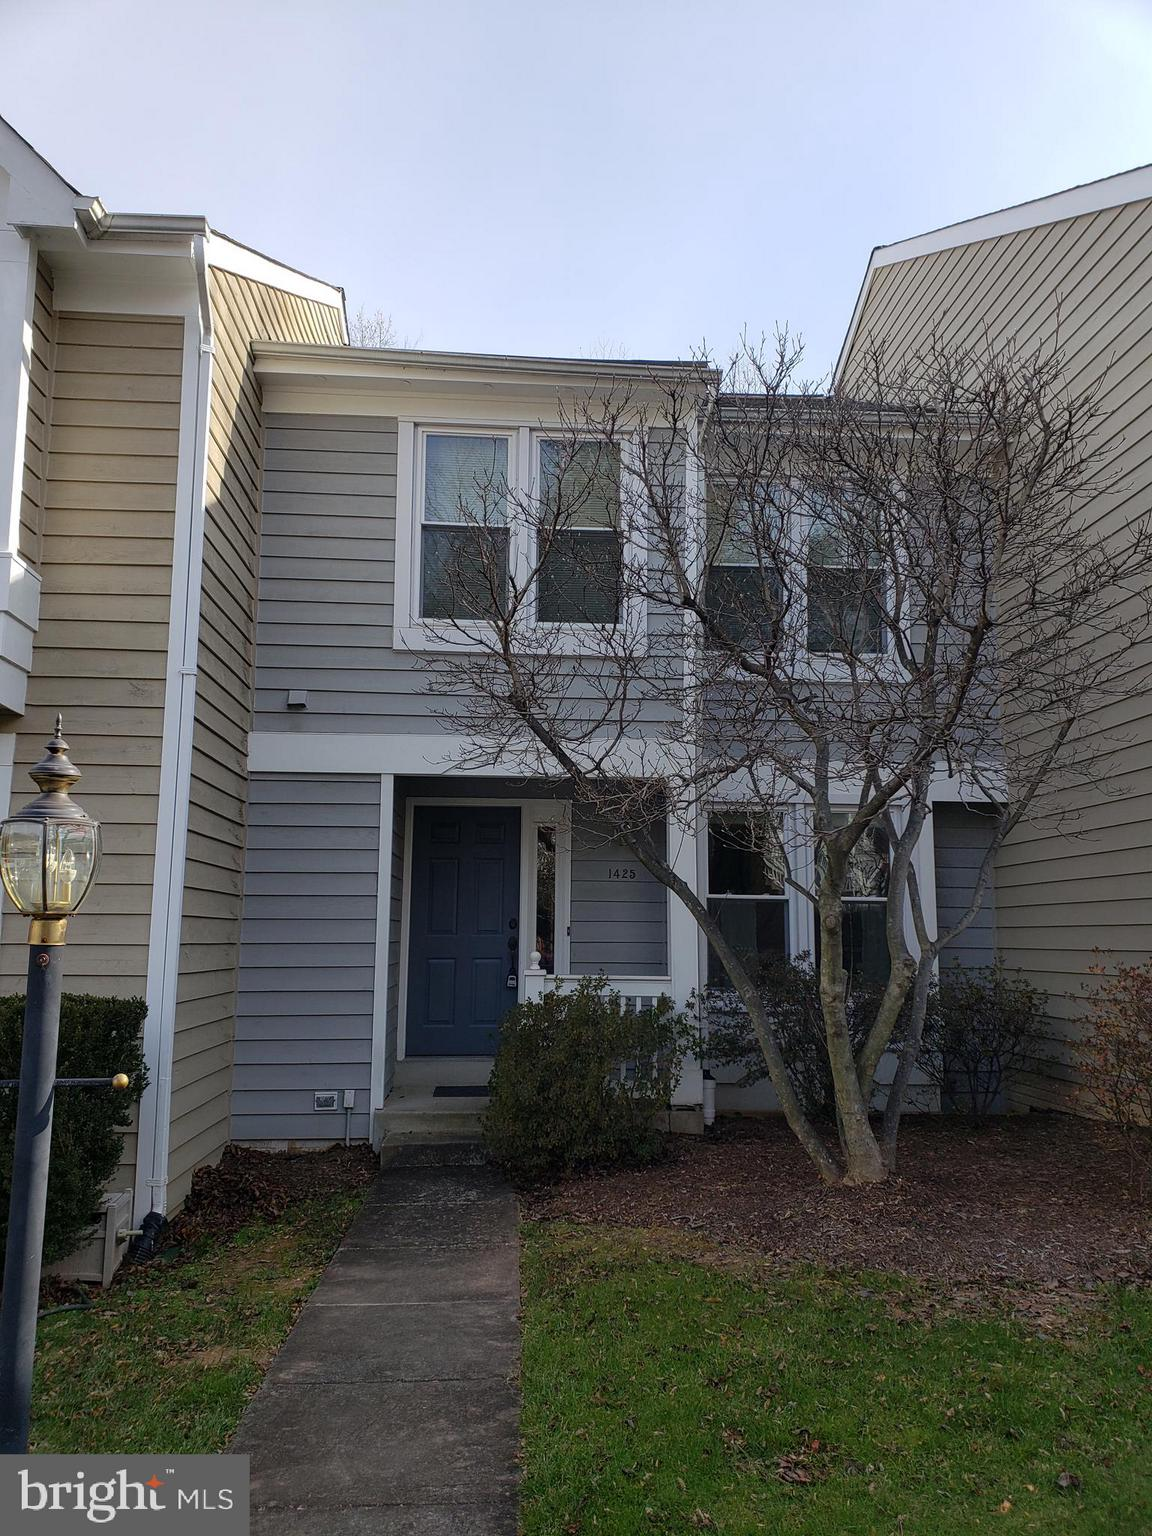 Available for immediate occupancy! 3 level townhome in a fantastic Reston location! 3 bedrooms 2.5 baths, brand new deck, and furnace. The master bathroom has been renovated. Neat, clean, and well cared for. Step down family room with cozy fireplace, vaulted ceilings in the master bedroom, laundry in fully finished lower level including a sink and storage room.  Don't miss this opportunity! Minutes to Fairfax County Pkwy, Metro, Reston Town Center and Toll Rd.